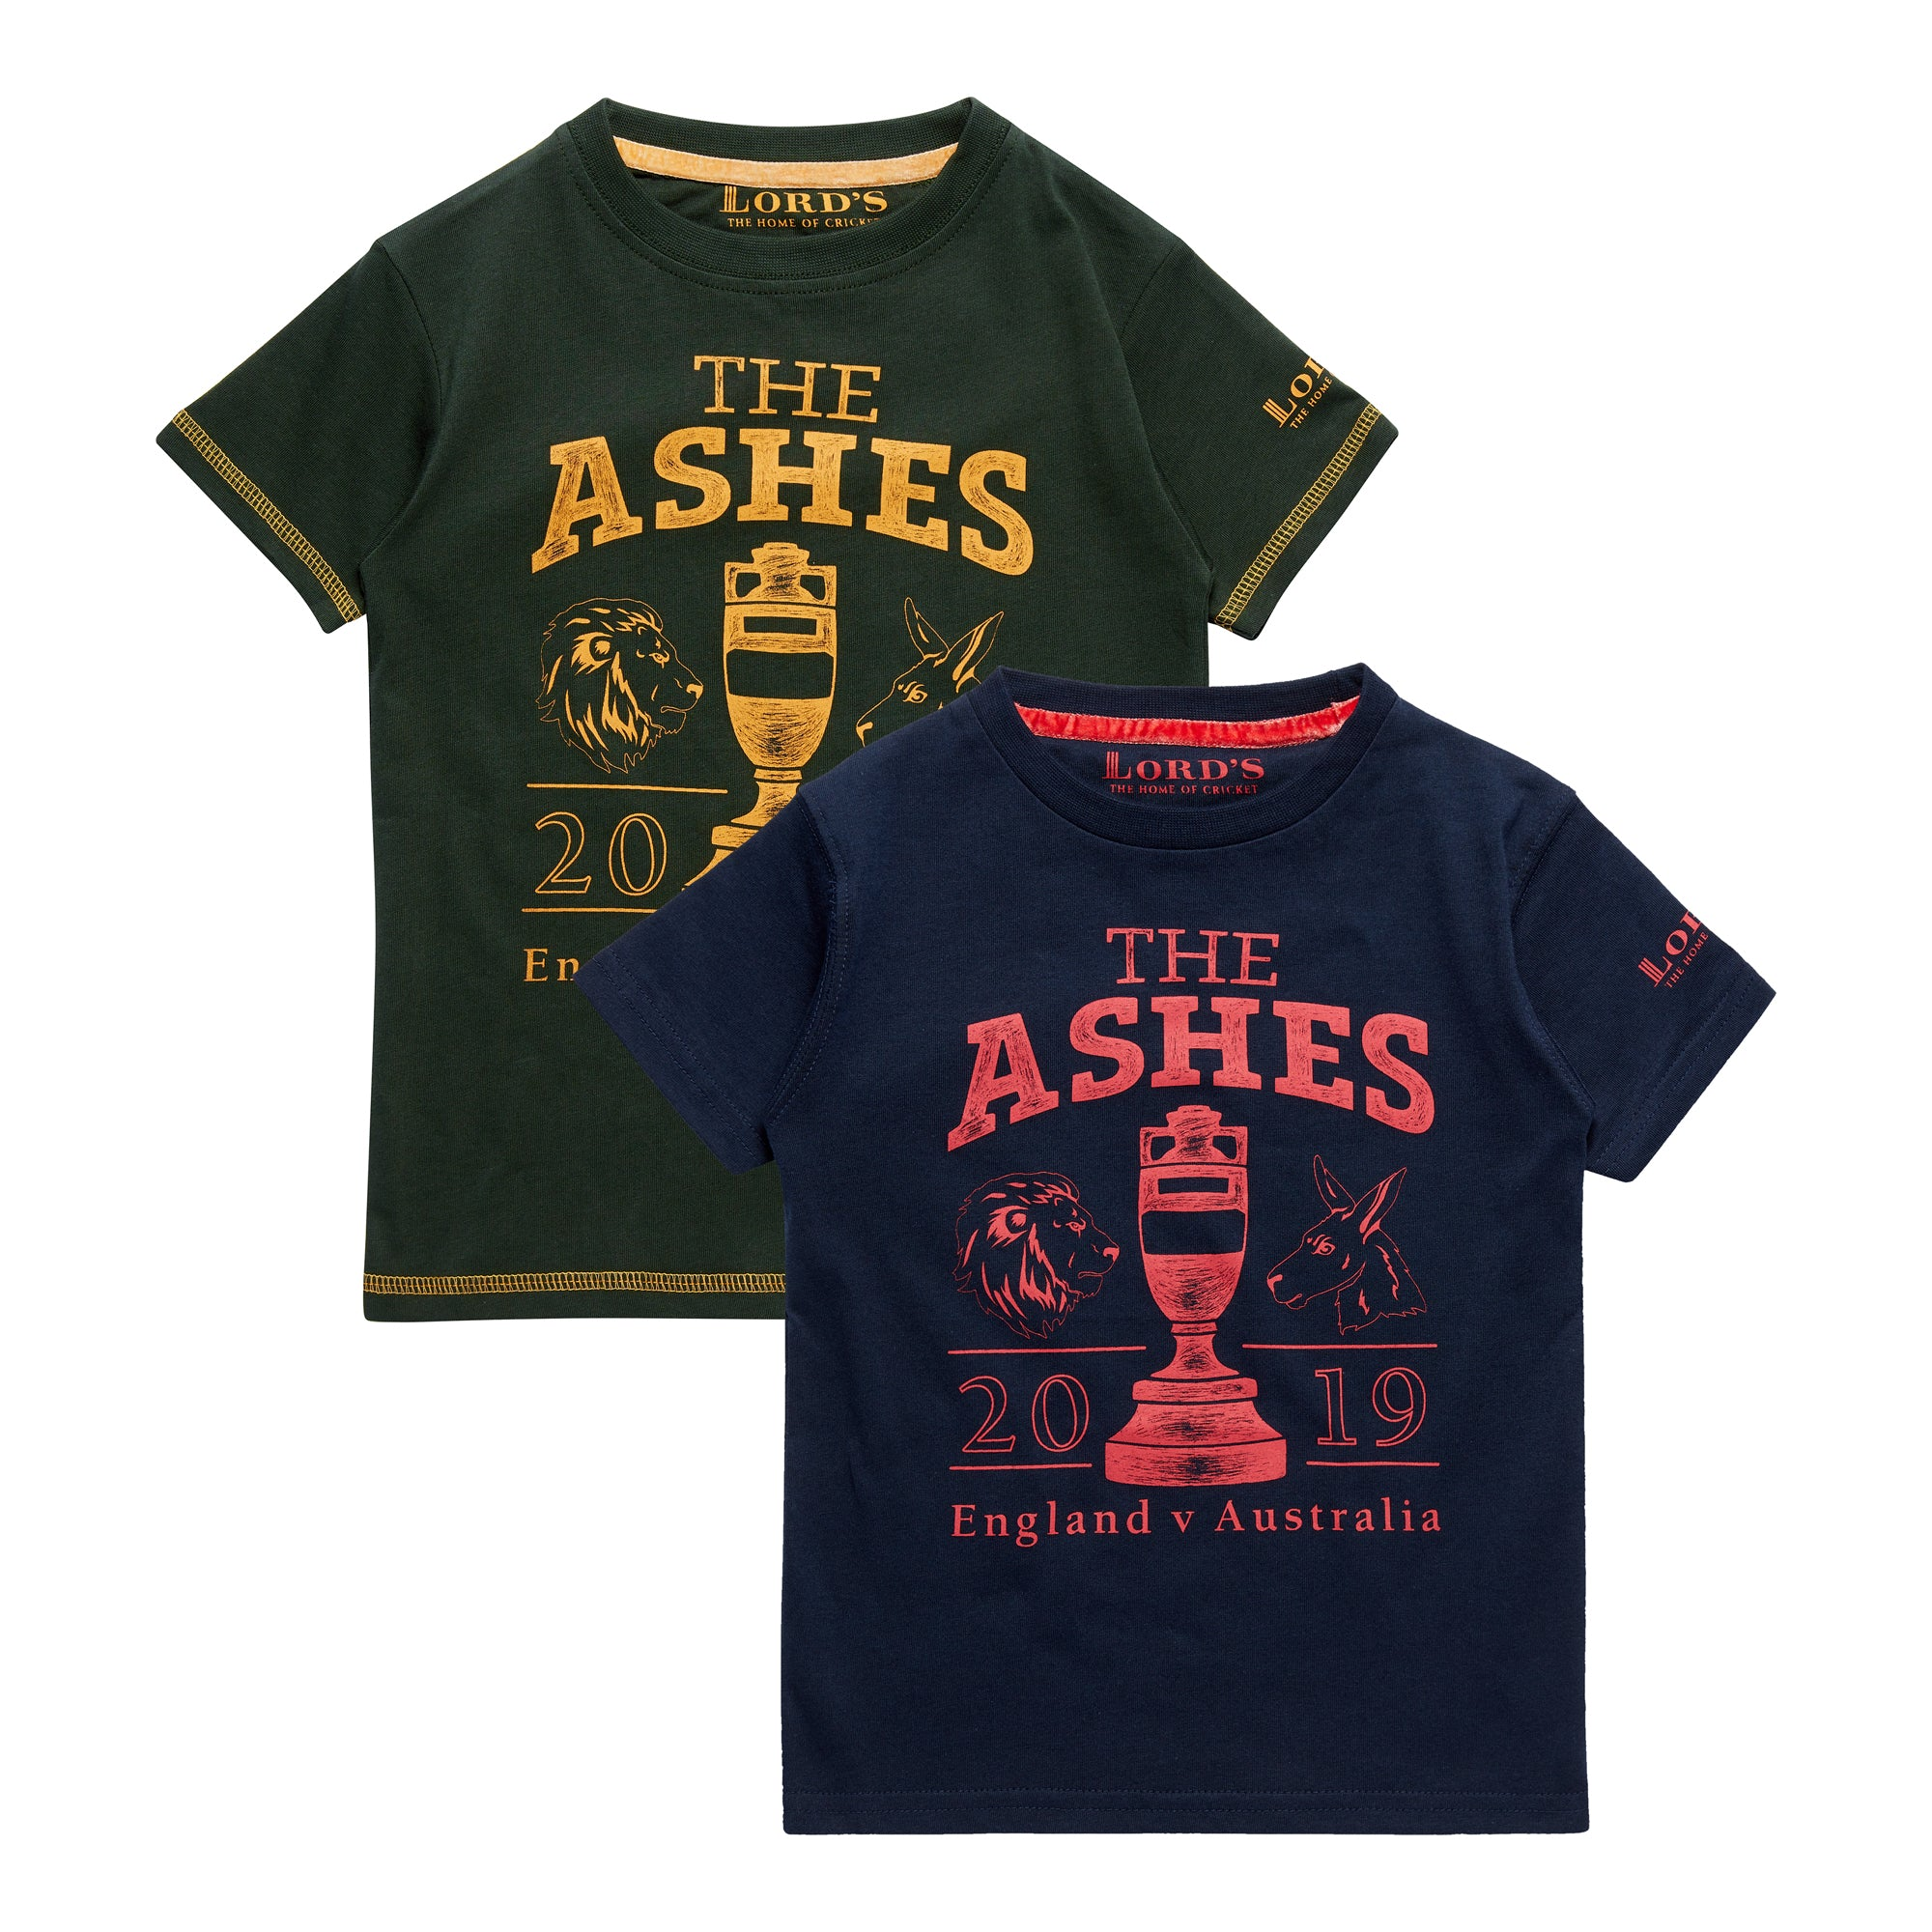 ASHES URN NAVY/RED CHILDREN'S T-SHIRT